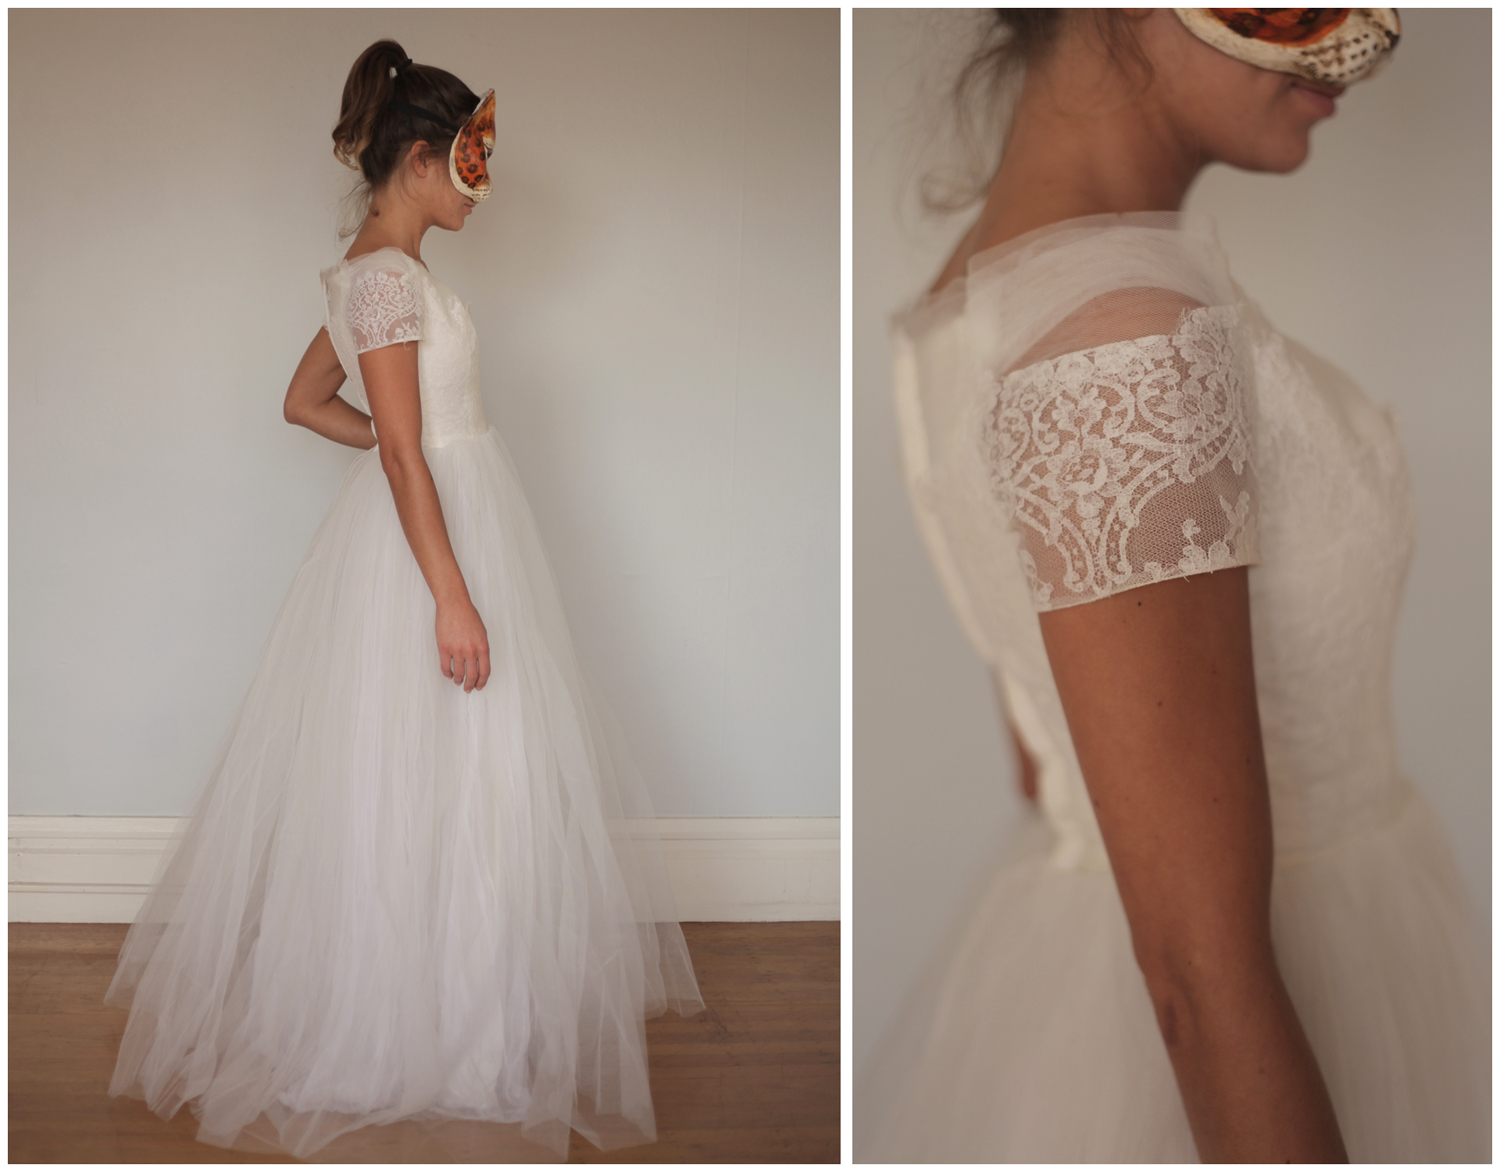 Big Poofy Wedding Dresses With Lace Viewing Gallery